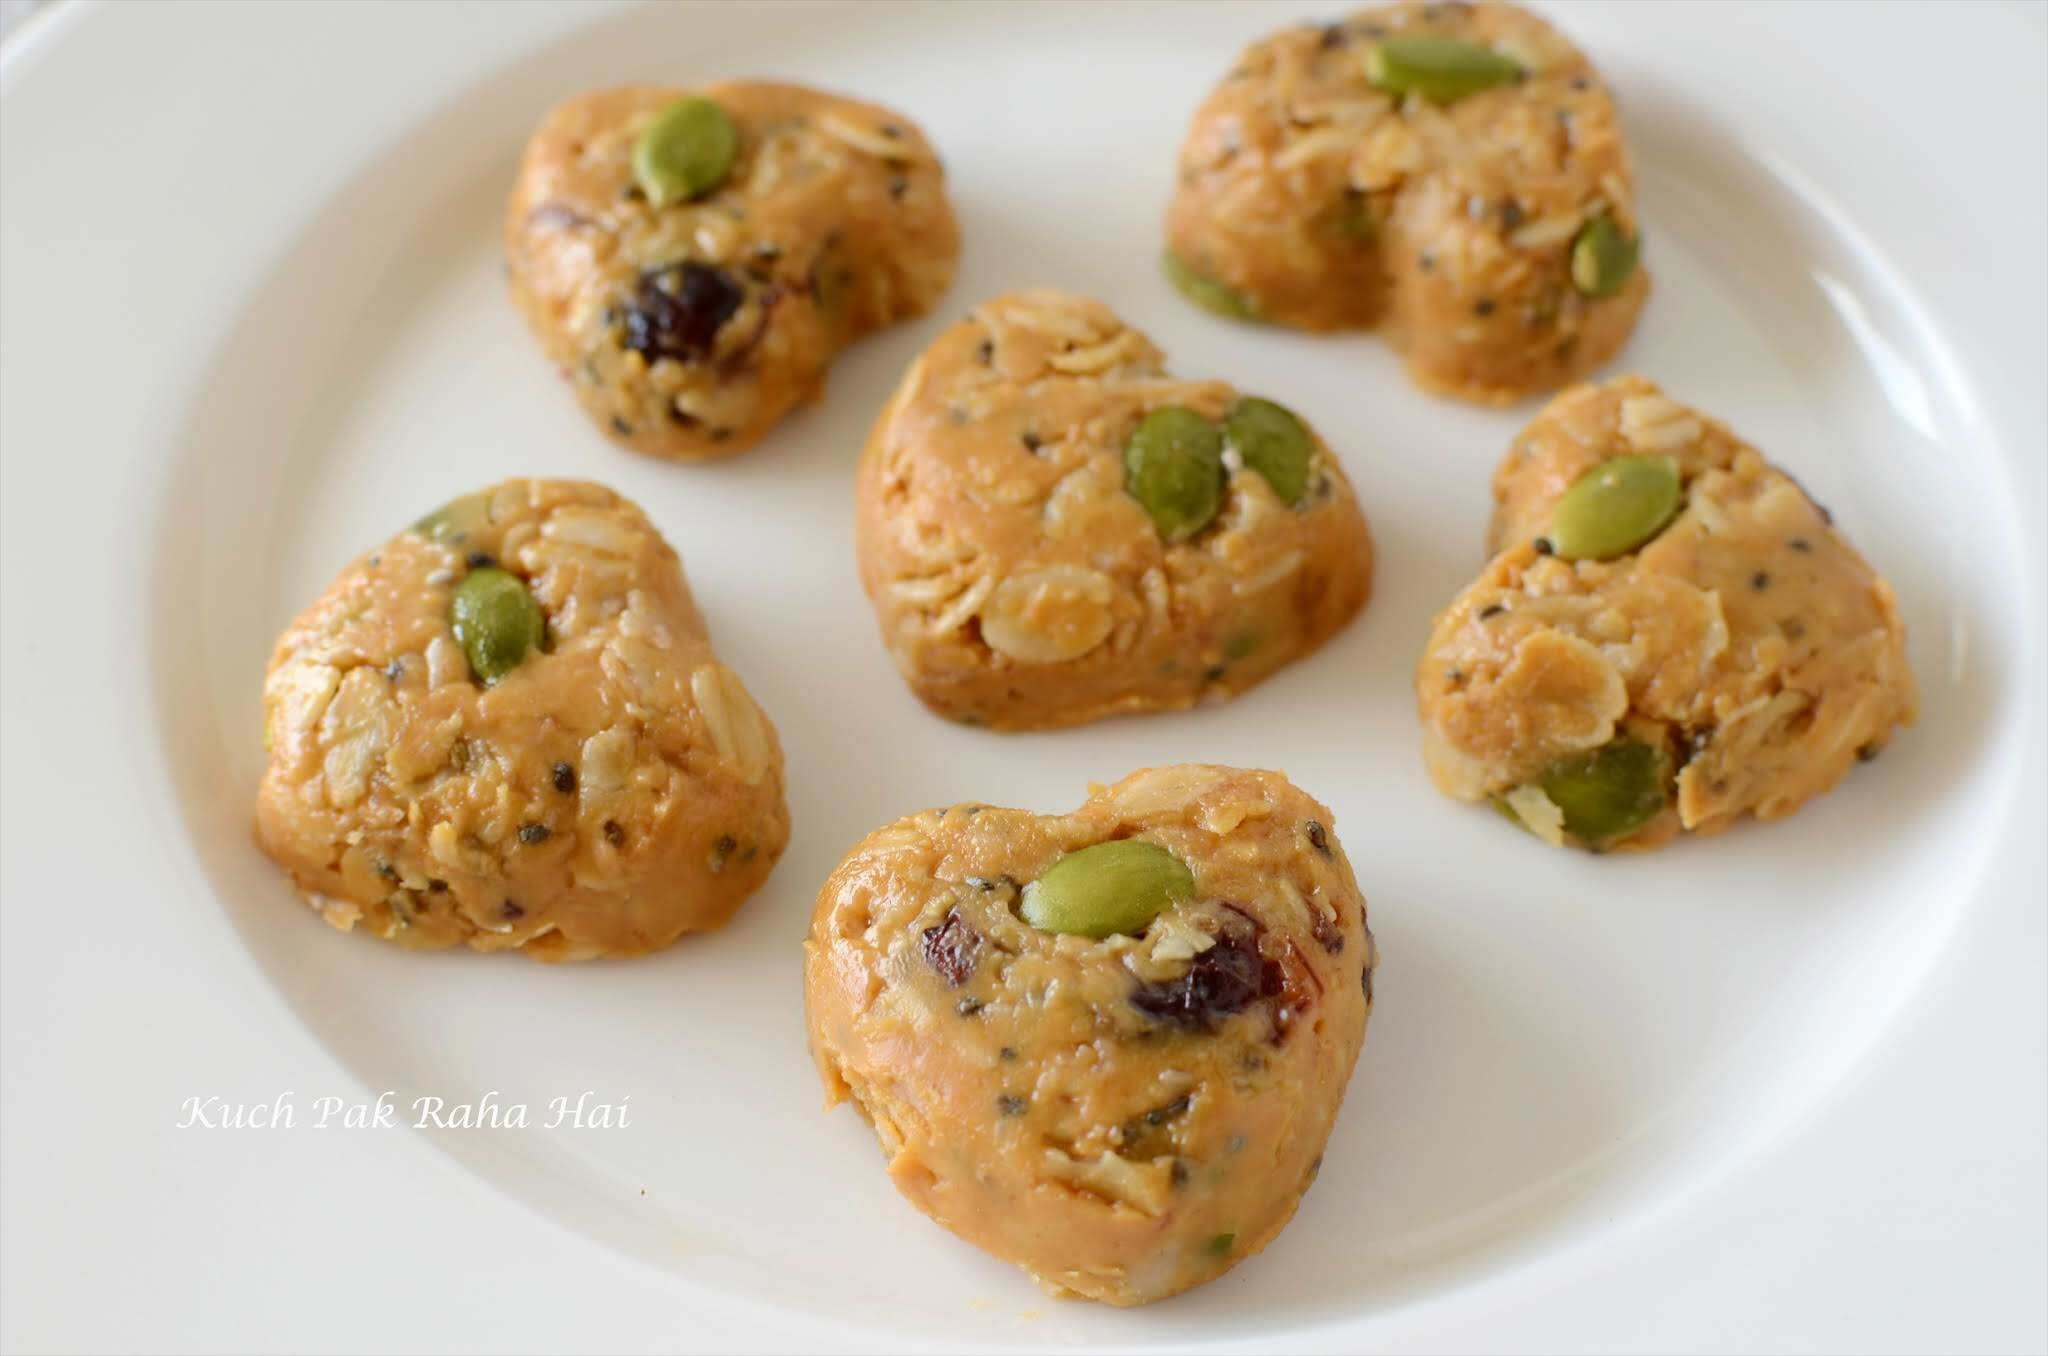 No Bake Oats Peanut Butter Energy Bites Healthy Snack recipe with Oats